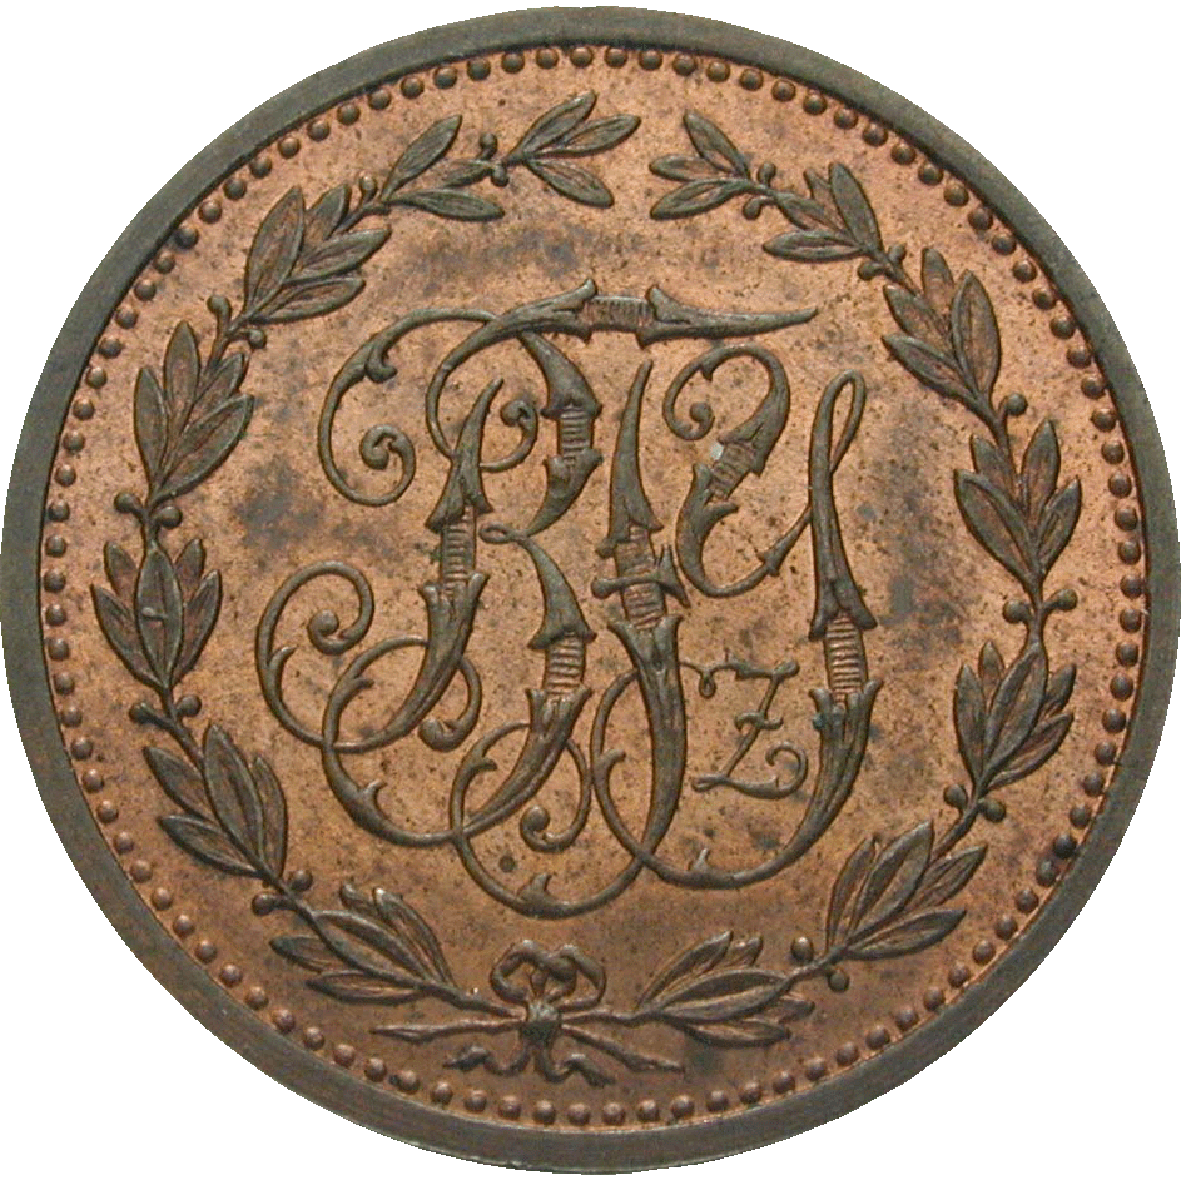 German Confederation, County of Ysenburg-Büdingen, Bruno, Schnepfenheller (reverse)